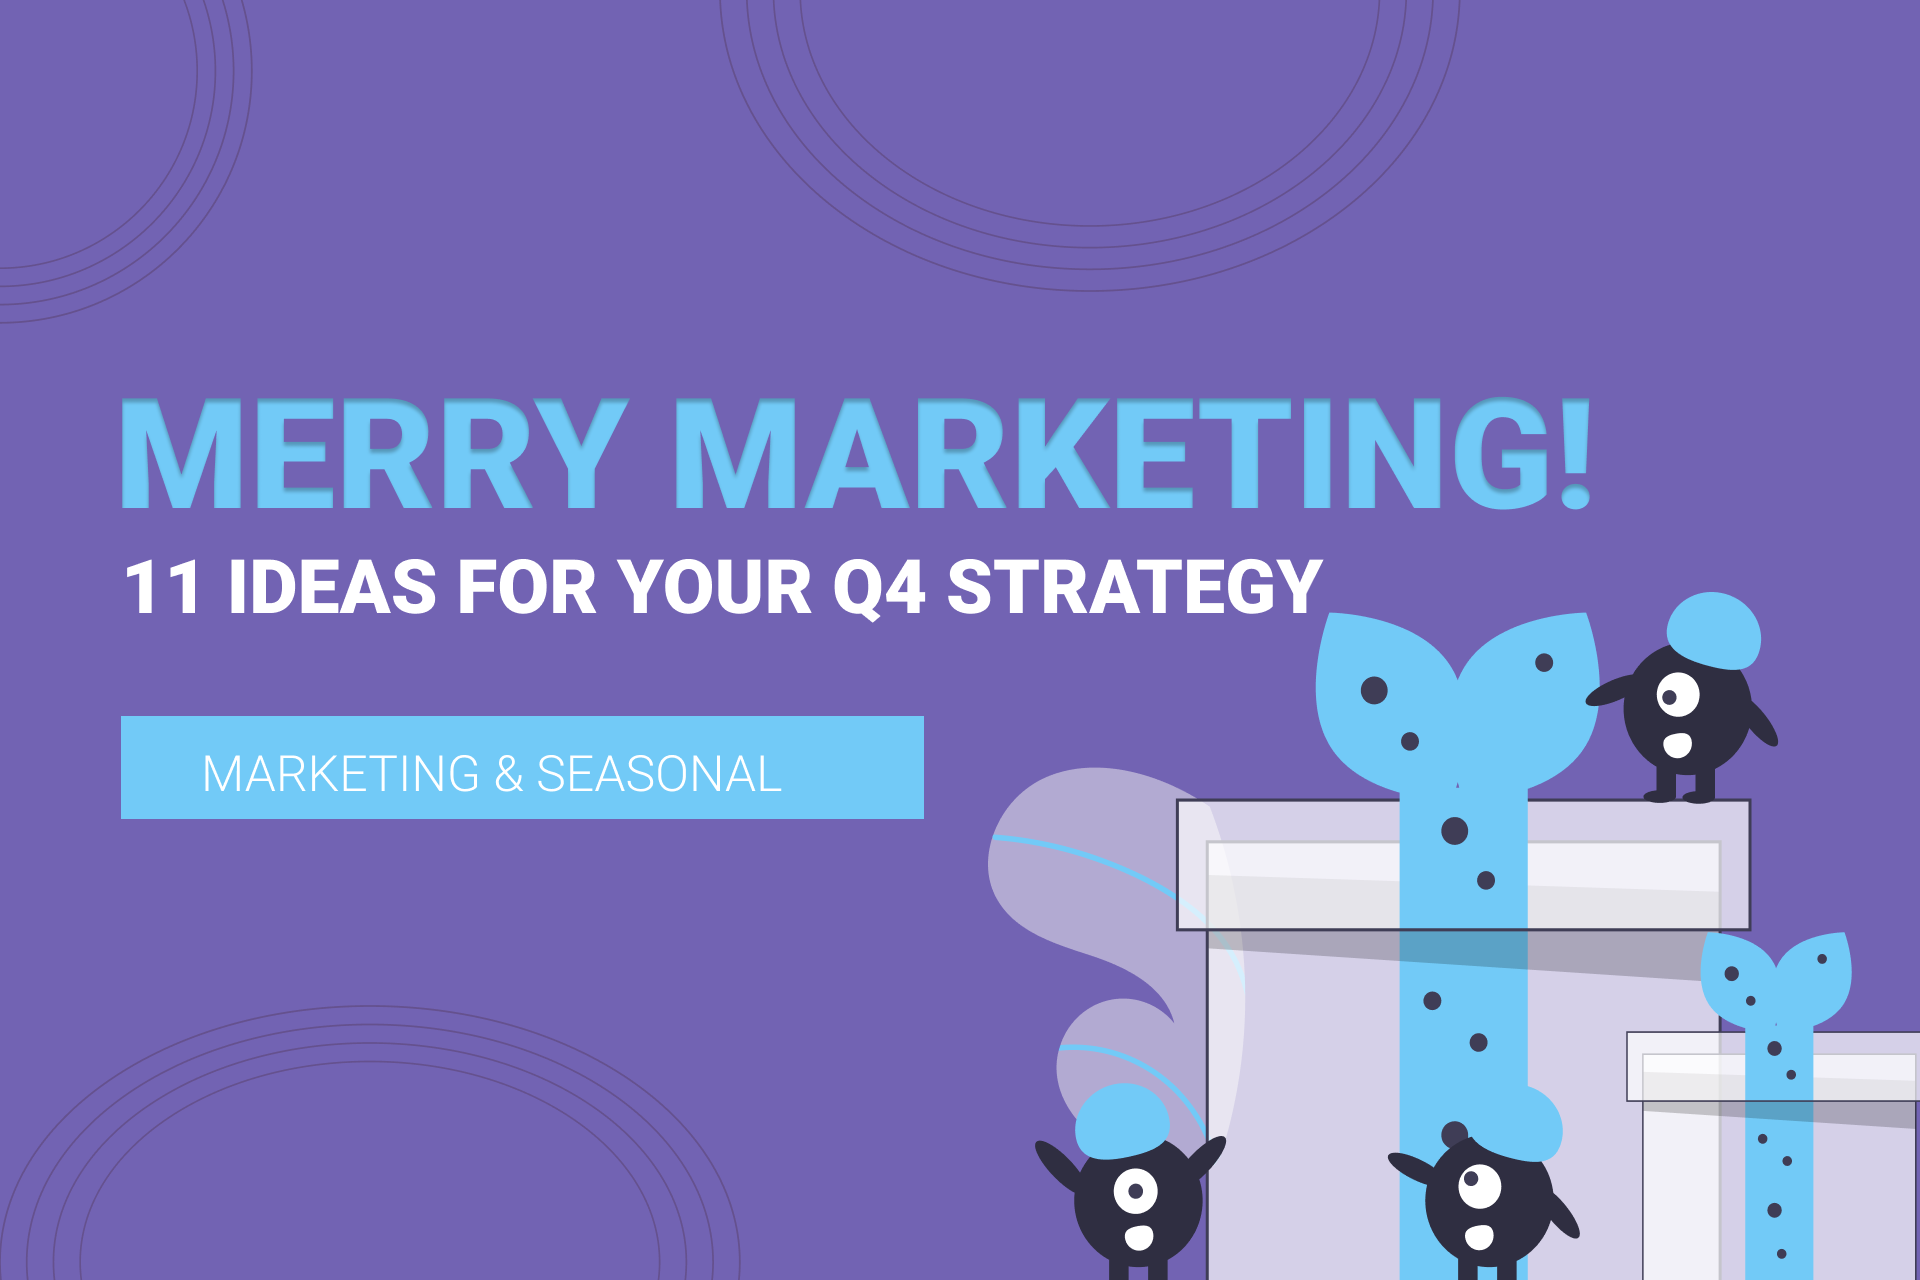 Merry Marketing! 10 Marketing Ideas For Your Q4 Strategy